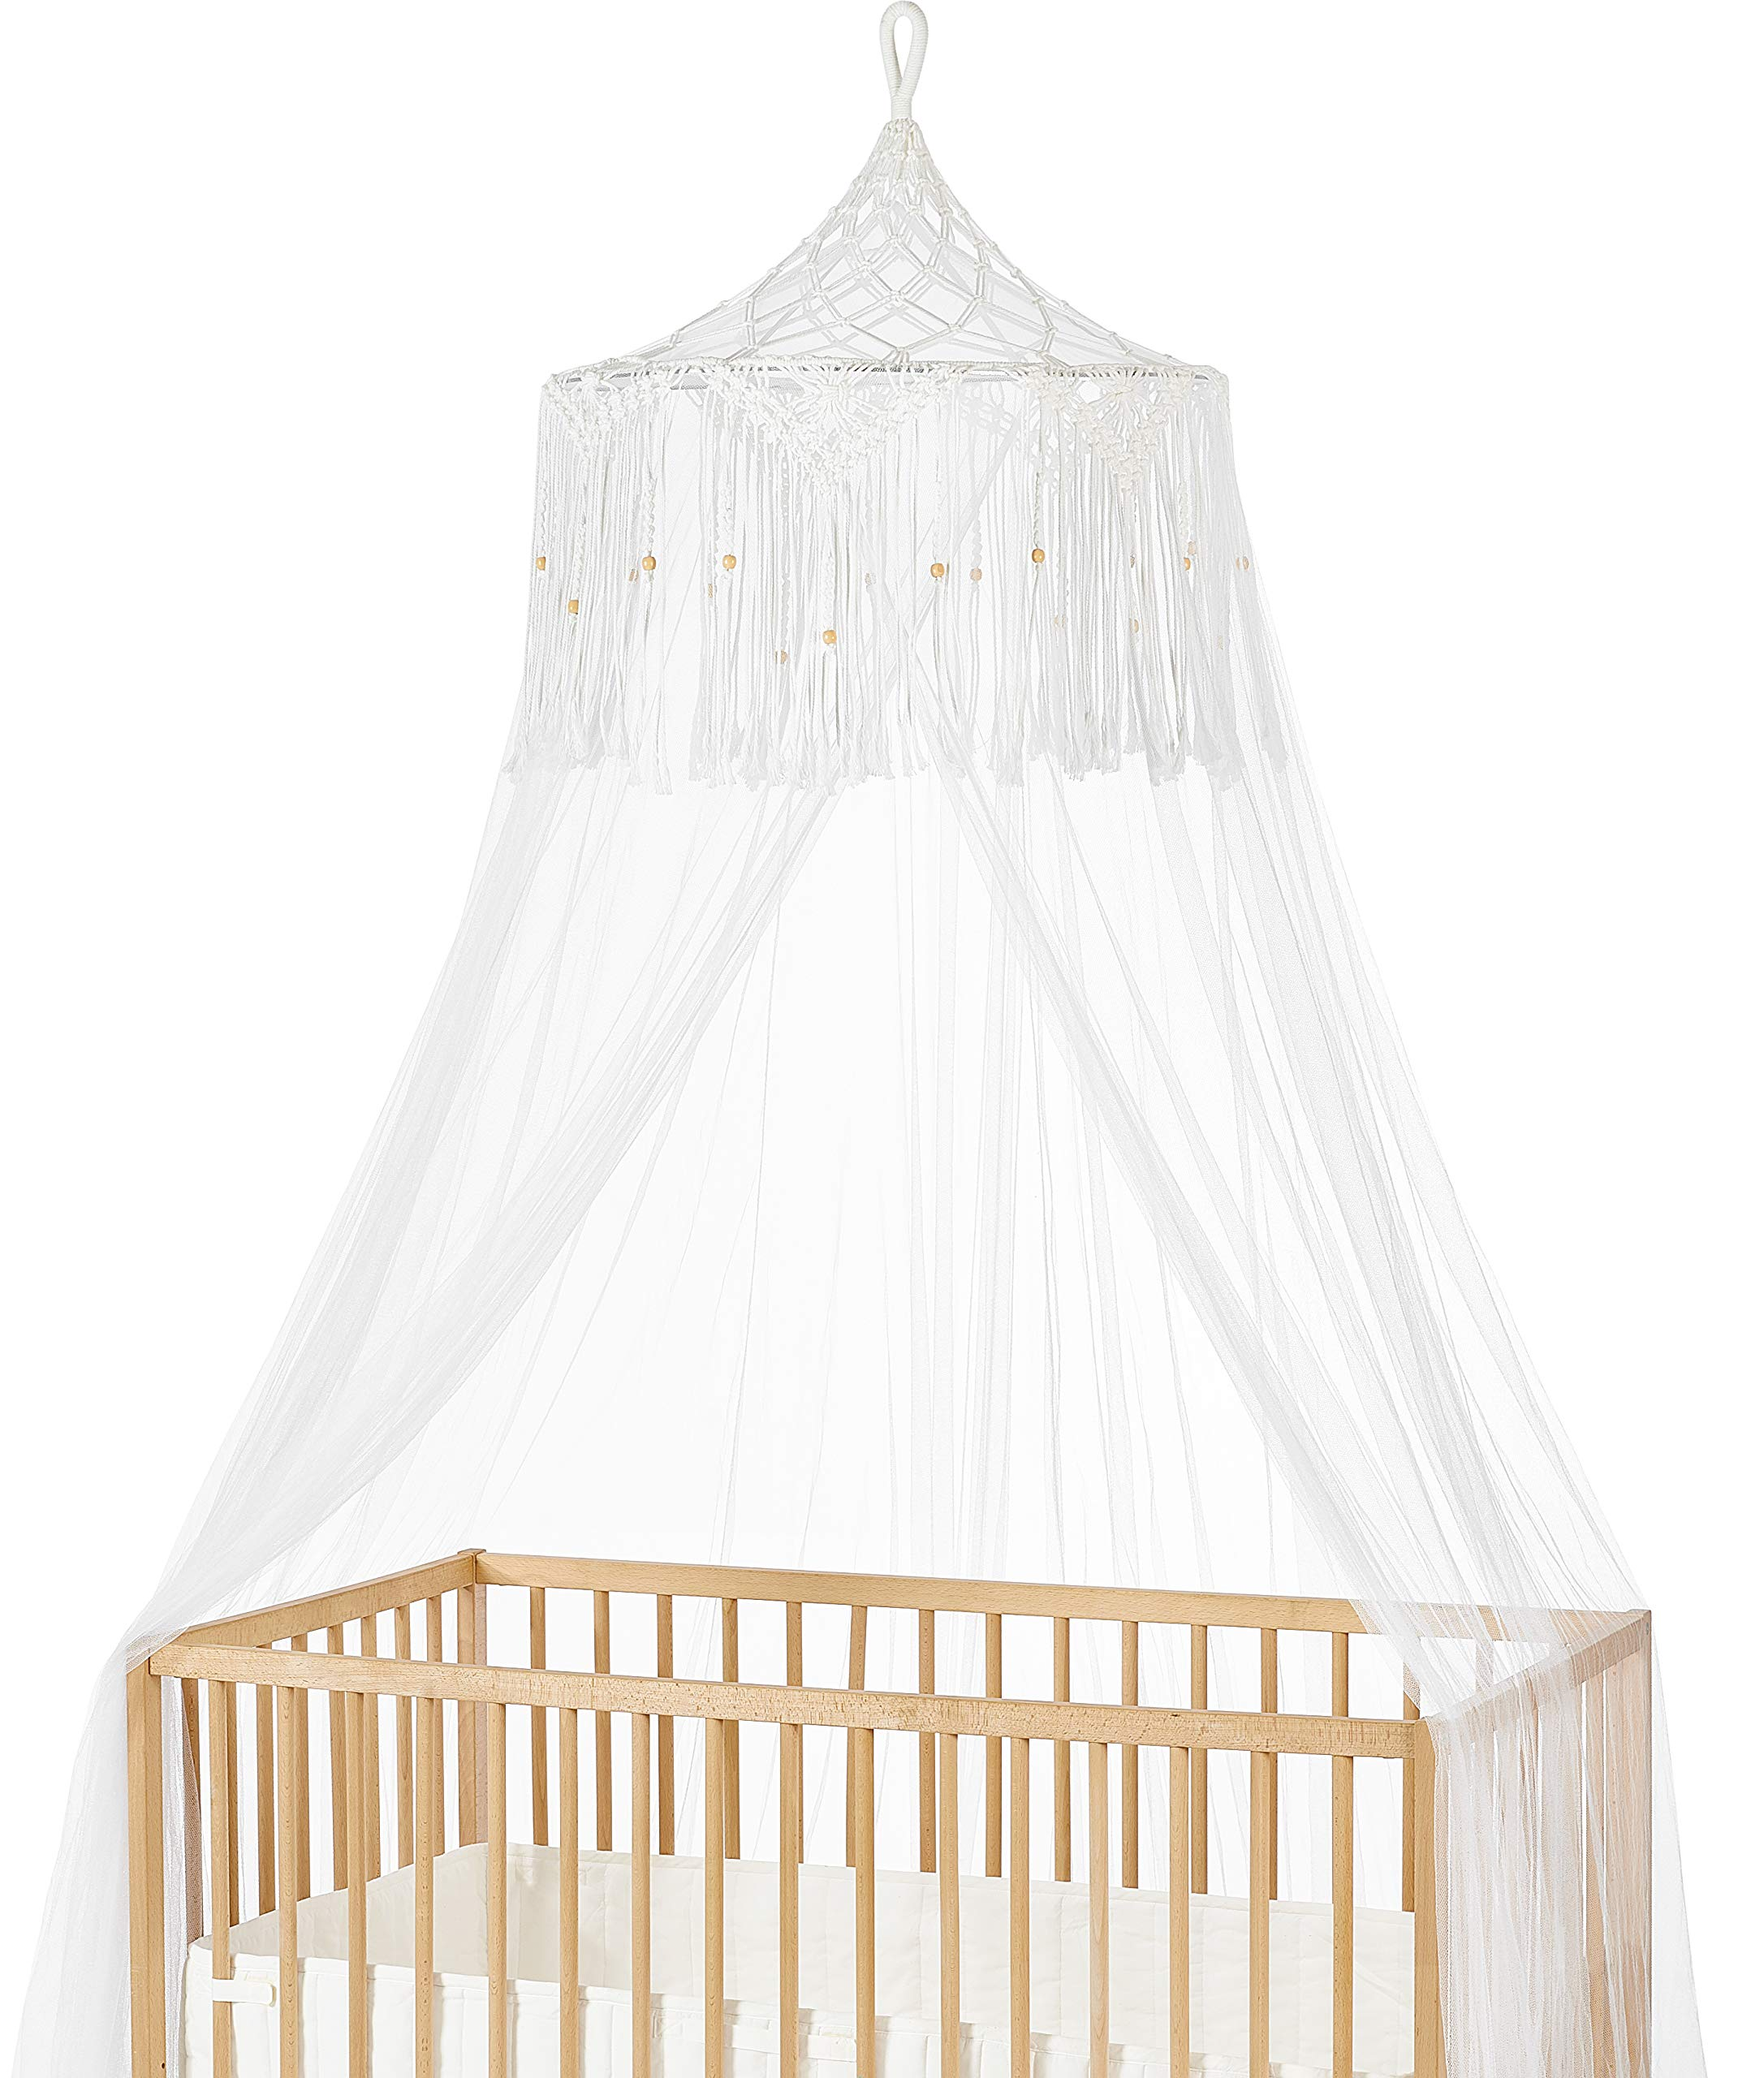 Mkono Macrame Bed Canopy Mosquito Net Play Tent Hanging Canopy Macrame for Kids Baby Bed, Large Mosquito Net for Single to King Size Beds,Macrame Wedding Home Decor,White